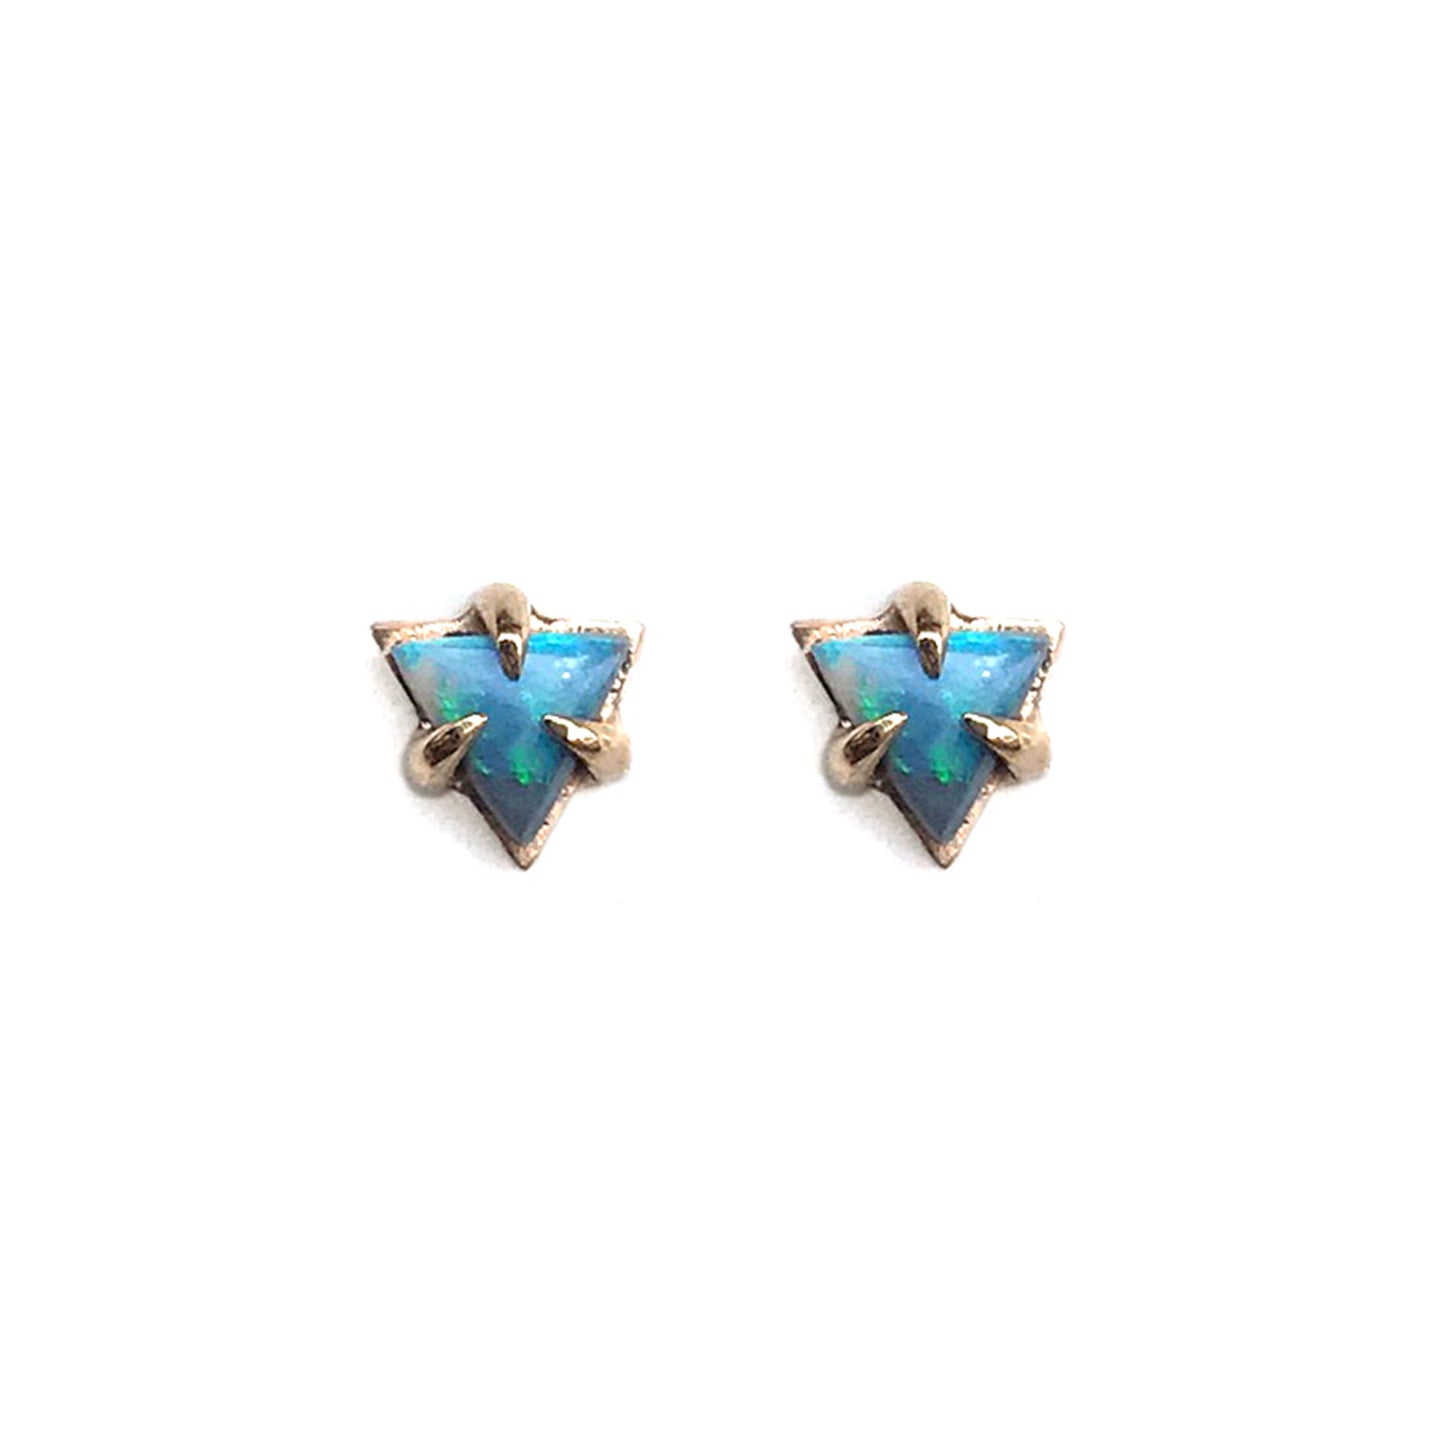 Triangle Opal Stud Earrings in gold